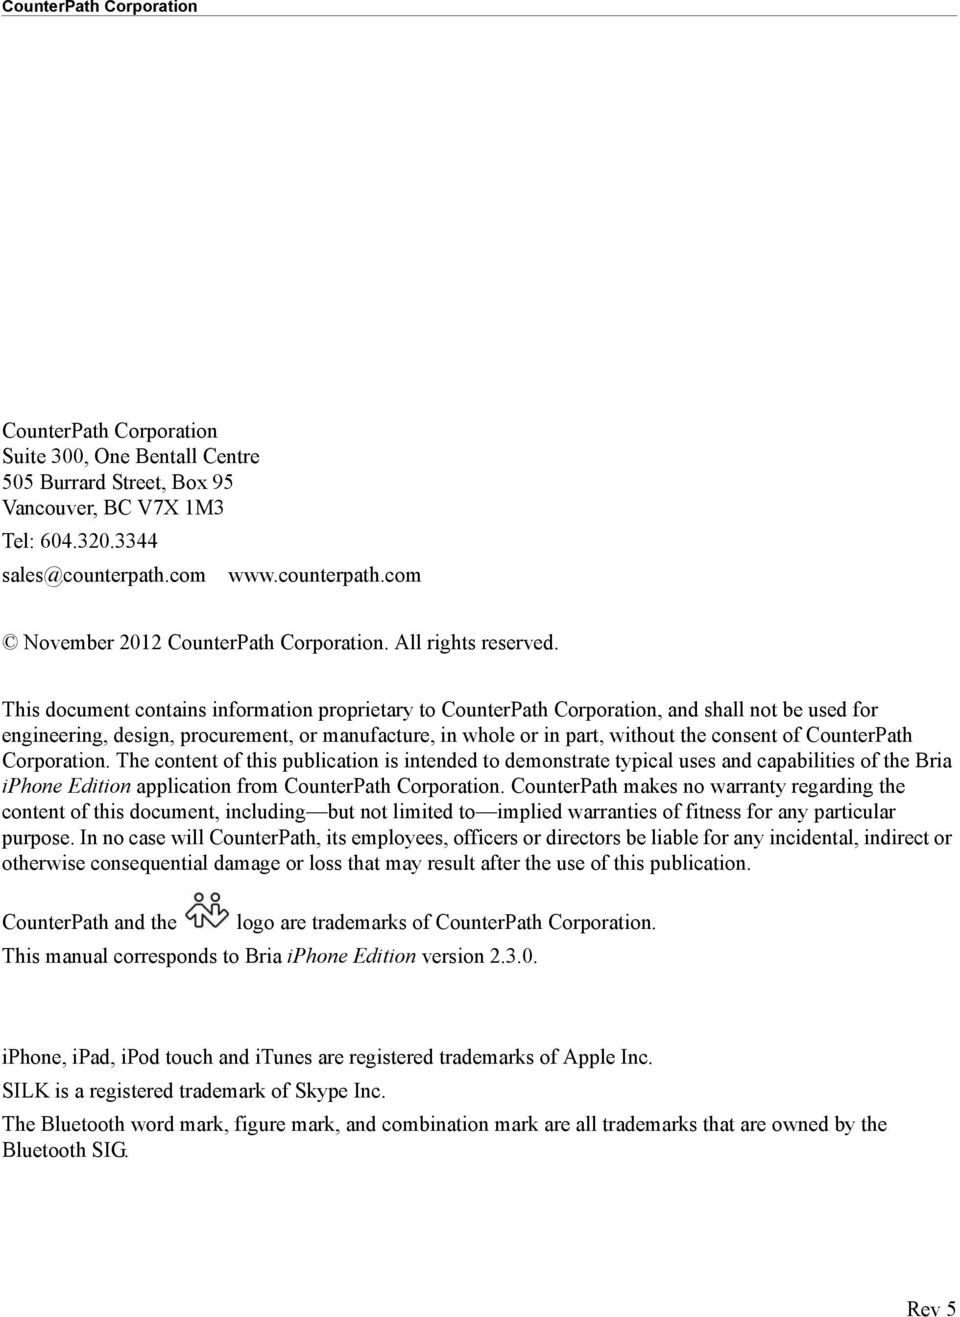 This document contains information proprietary to CounterPath Corporation, and shall not be used for engineering, design, procurement, or manufacture, in whole or in part, without the consent of